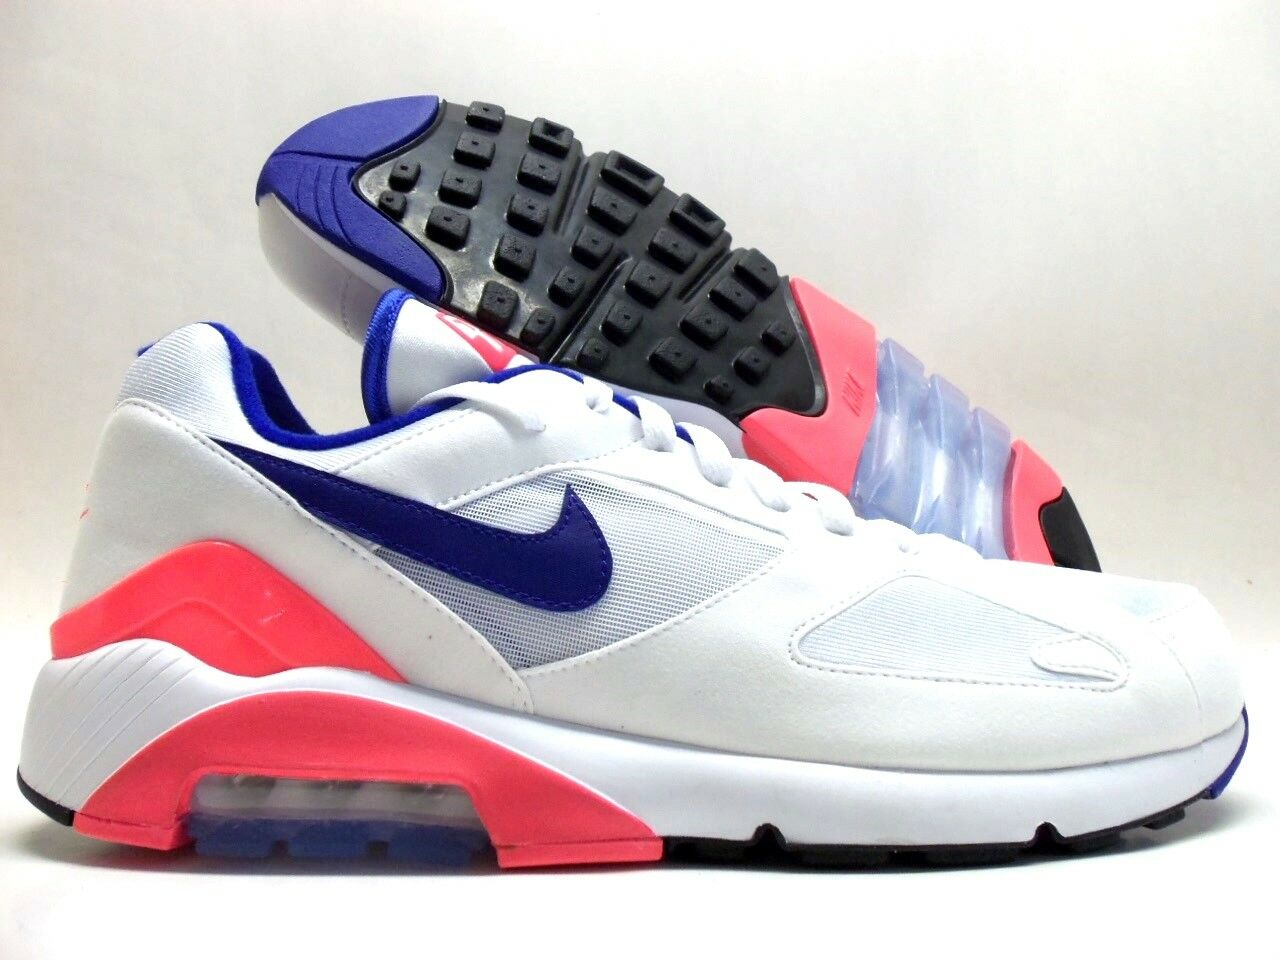 NIKE AIR MAX 180 WHITE/ULTRAMARINE-SOLAR RED SIZE MEN'S 10.5 Price reduction best-selling model of the brand